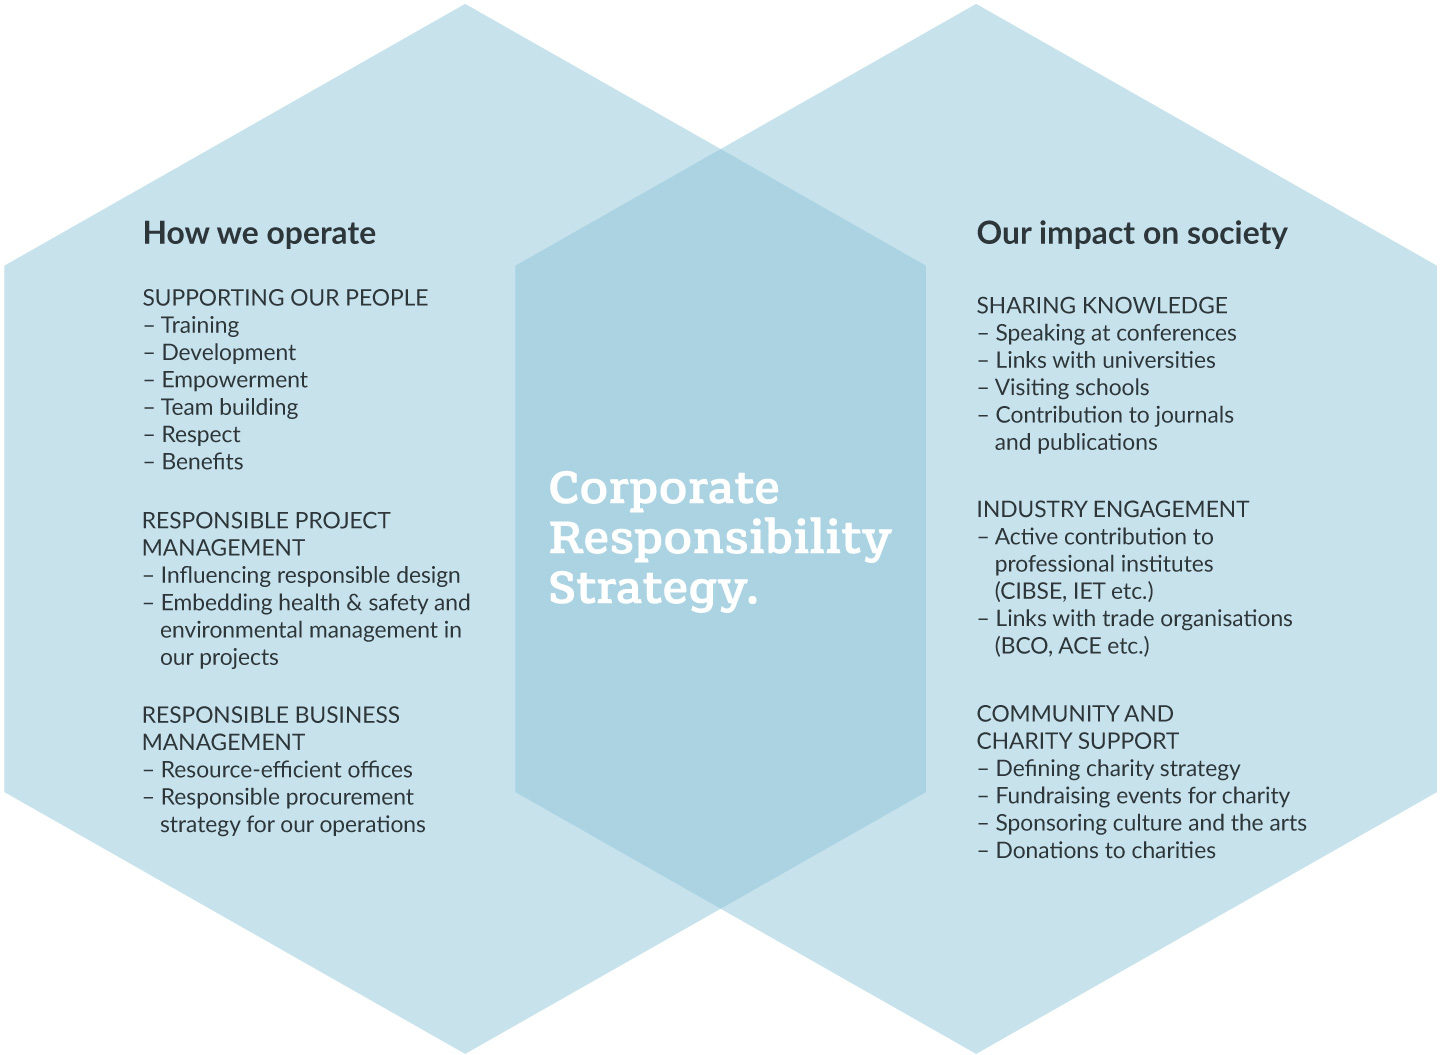 Haniel corporate strategy and corporate responsibility